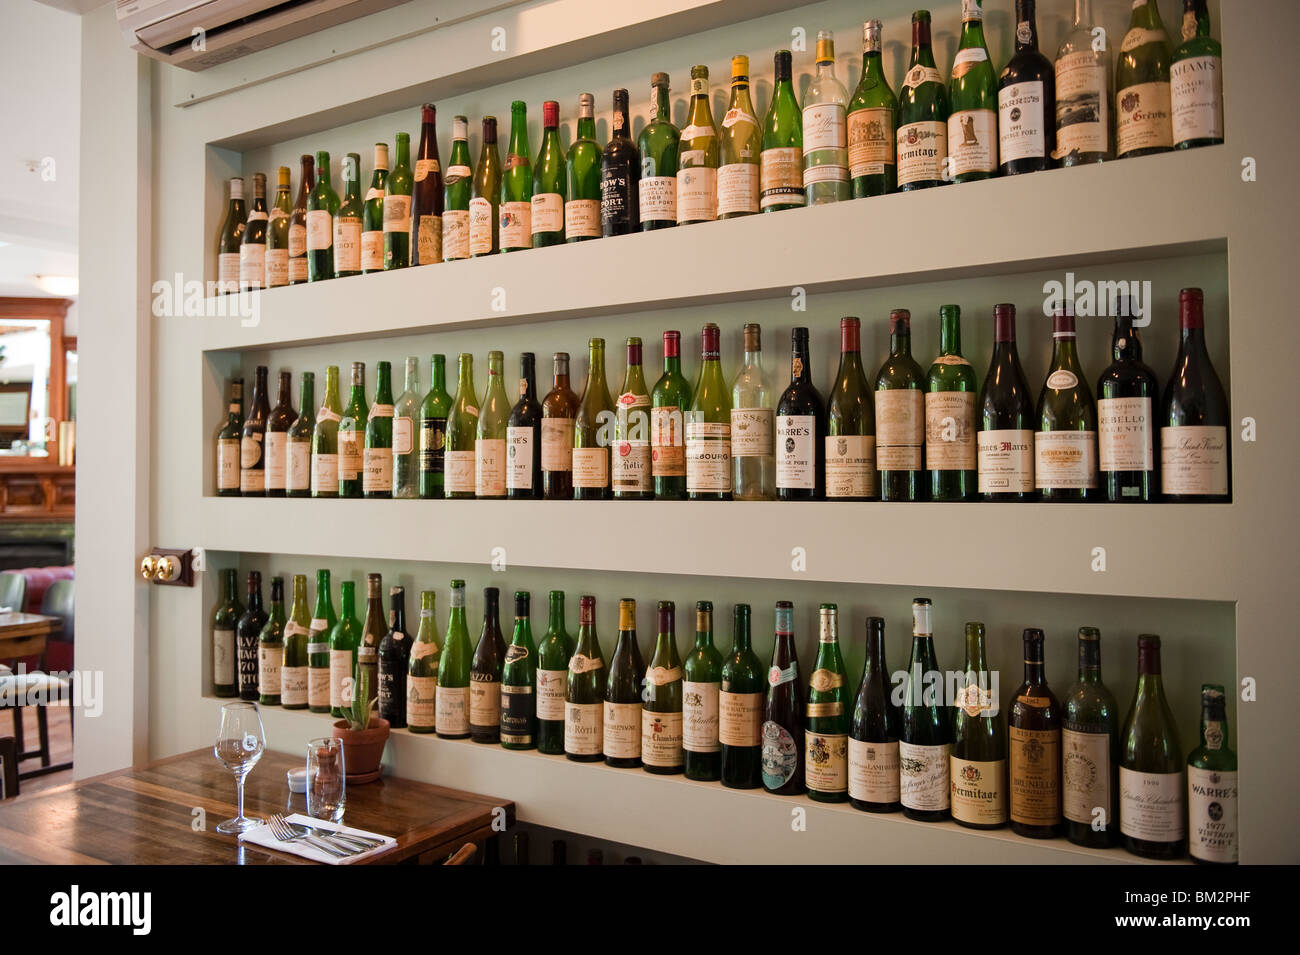 Wine Bottle Display Wine Bottles On Display Stock Photos & Wine Bottles On Display .